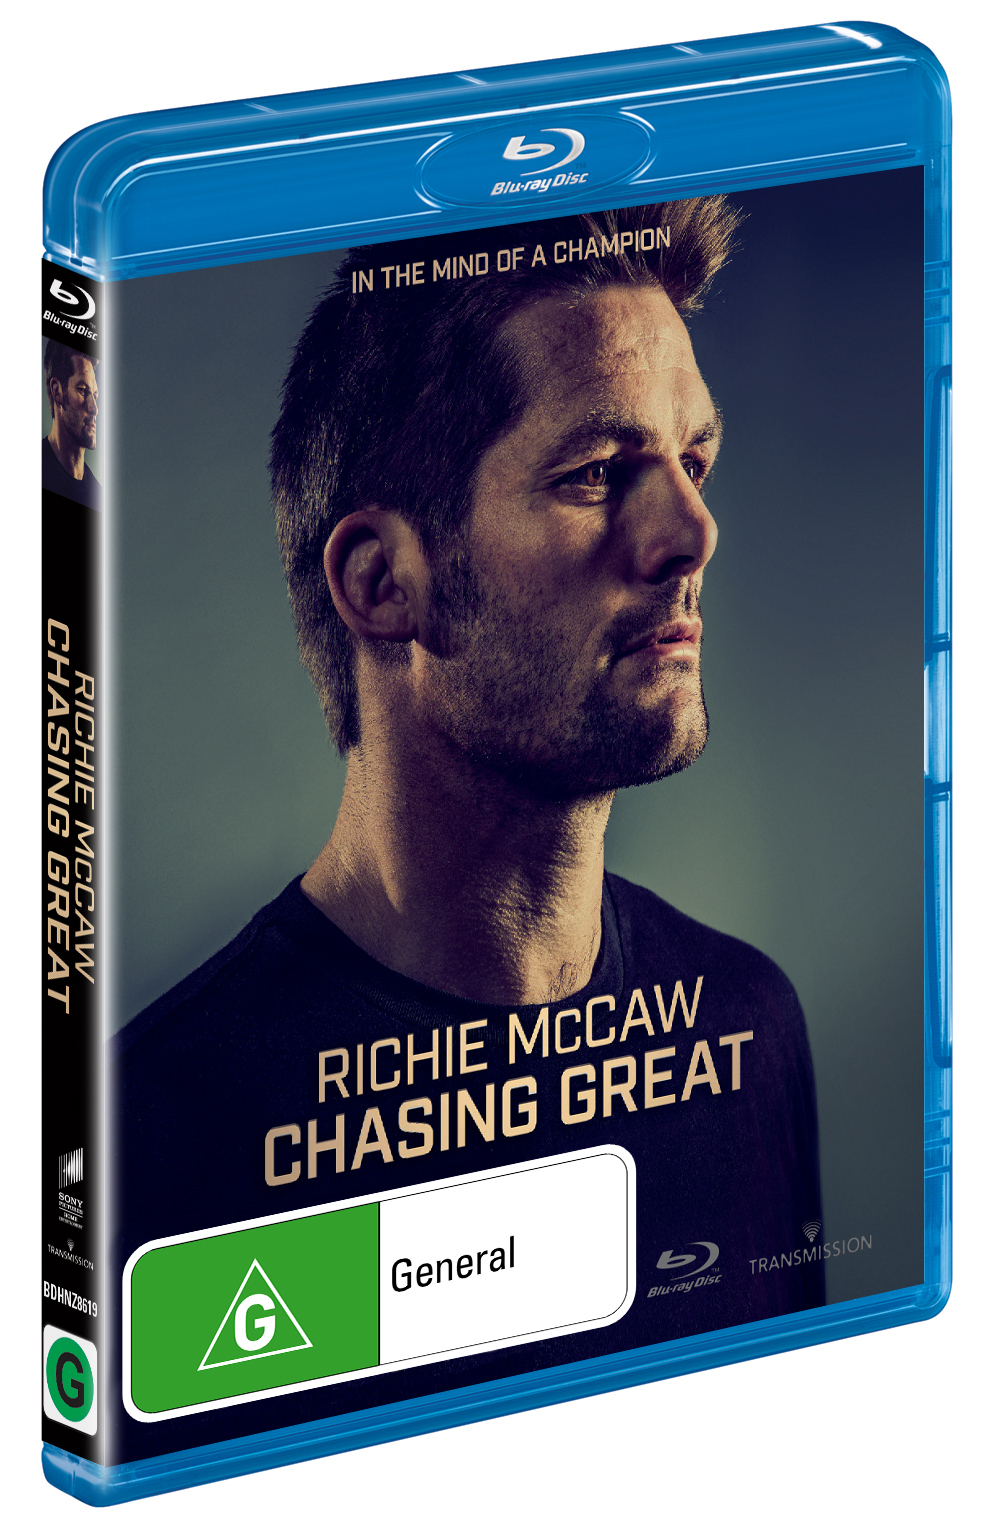 Richie McCaw: Chasing Great on Blu-ray image